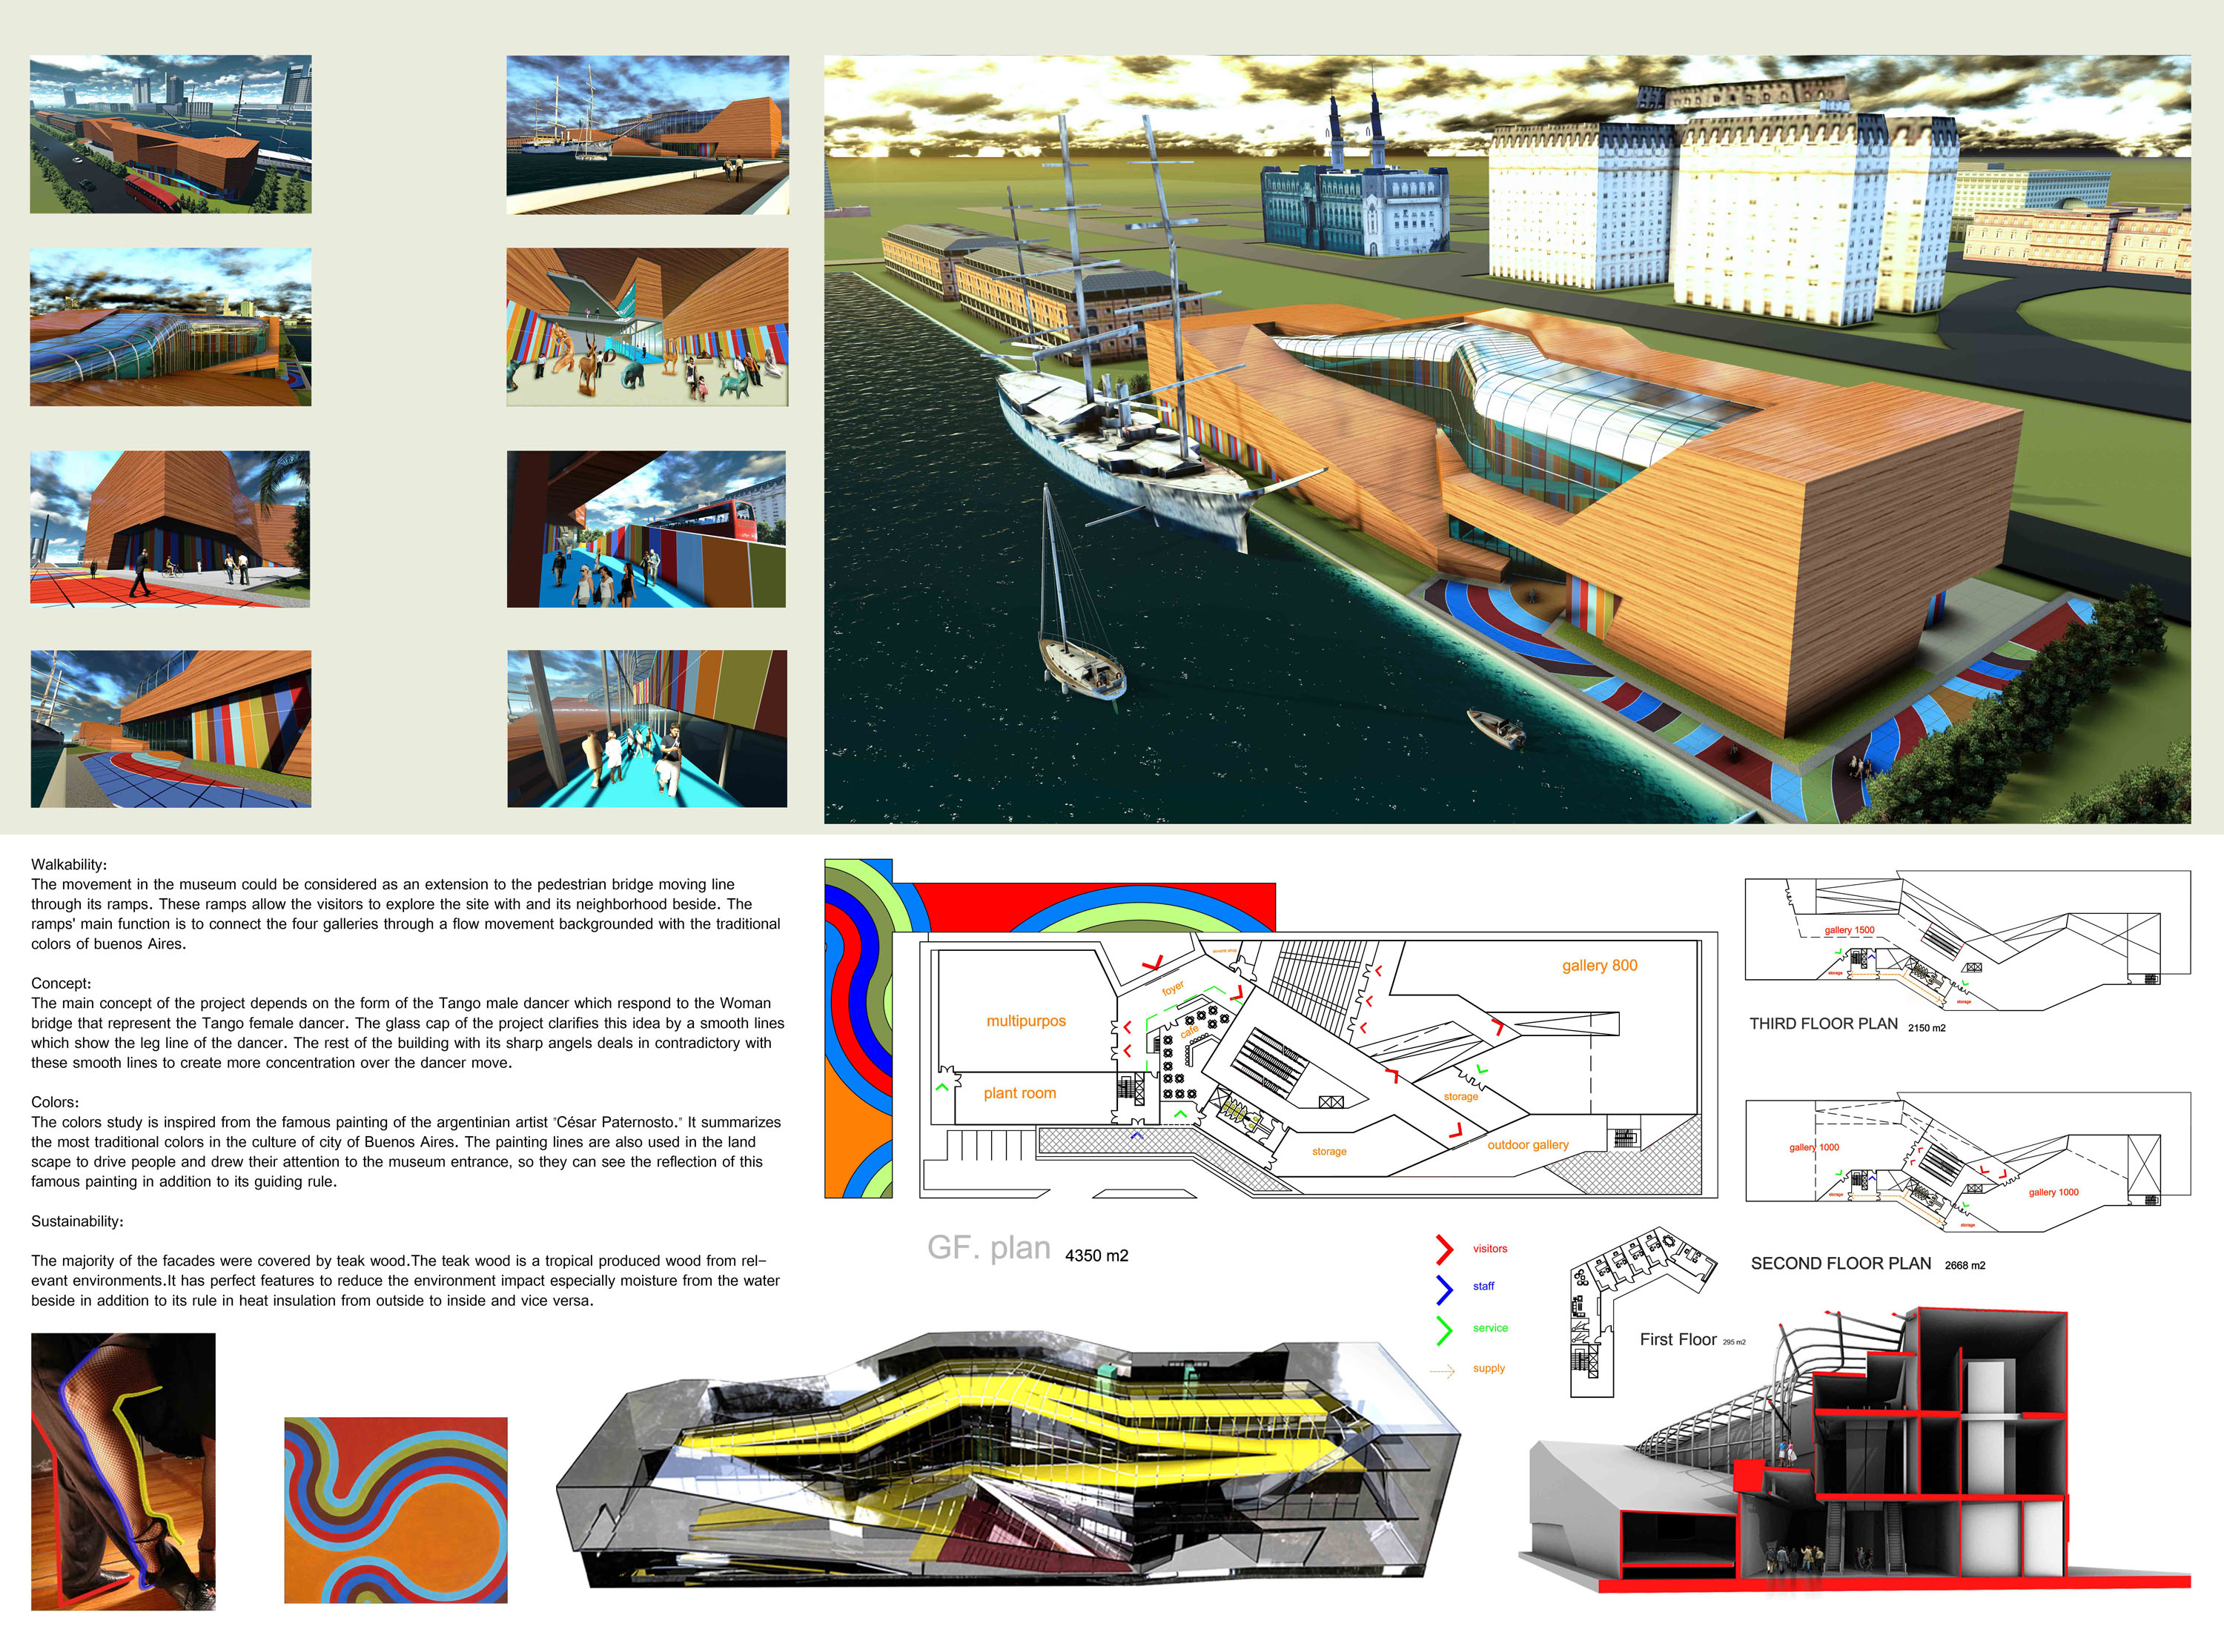 New contemporary art museum architecture student project design concept